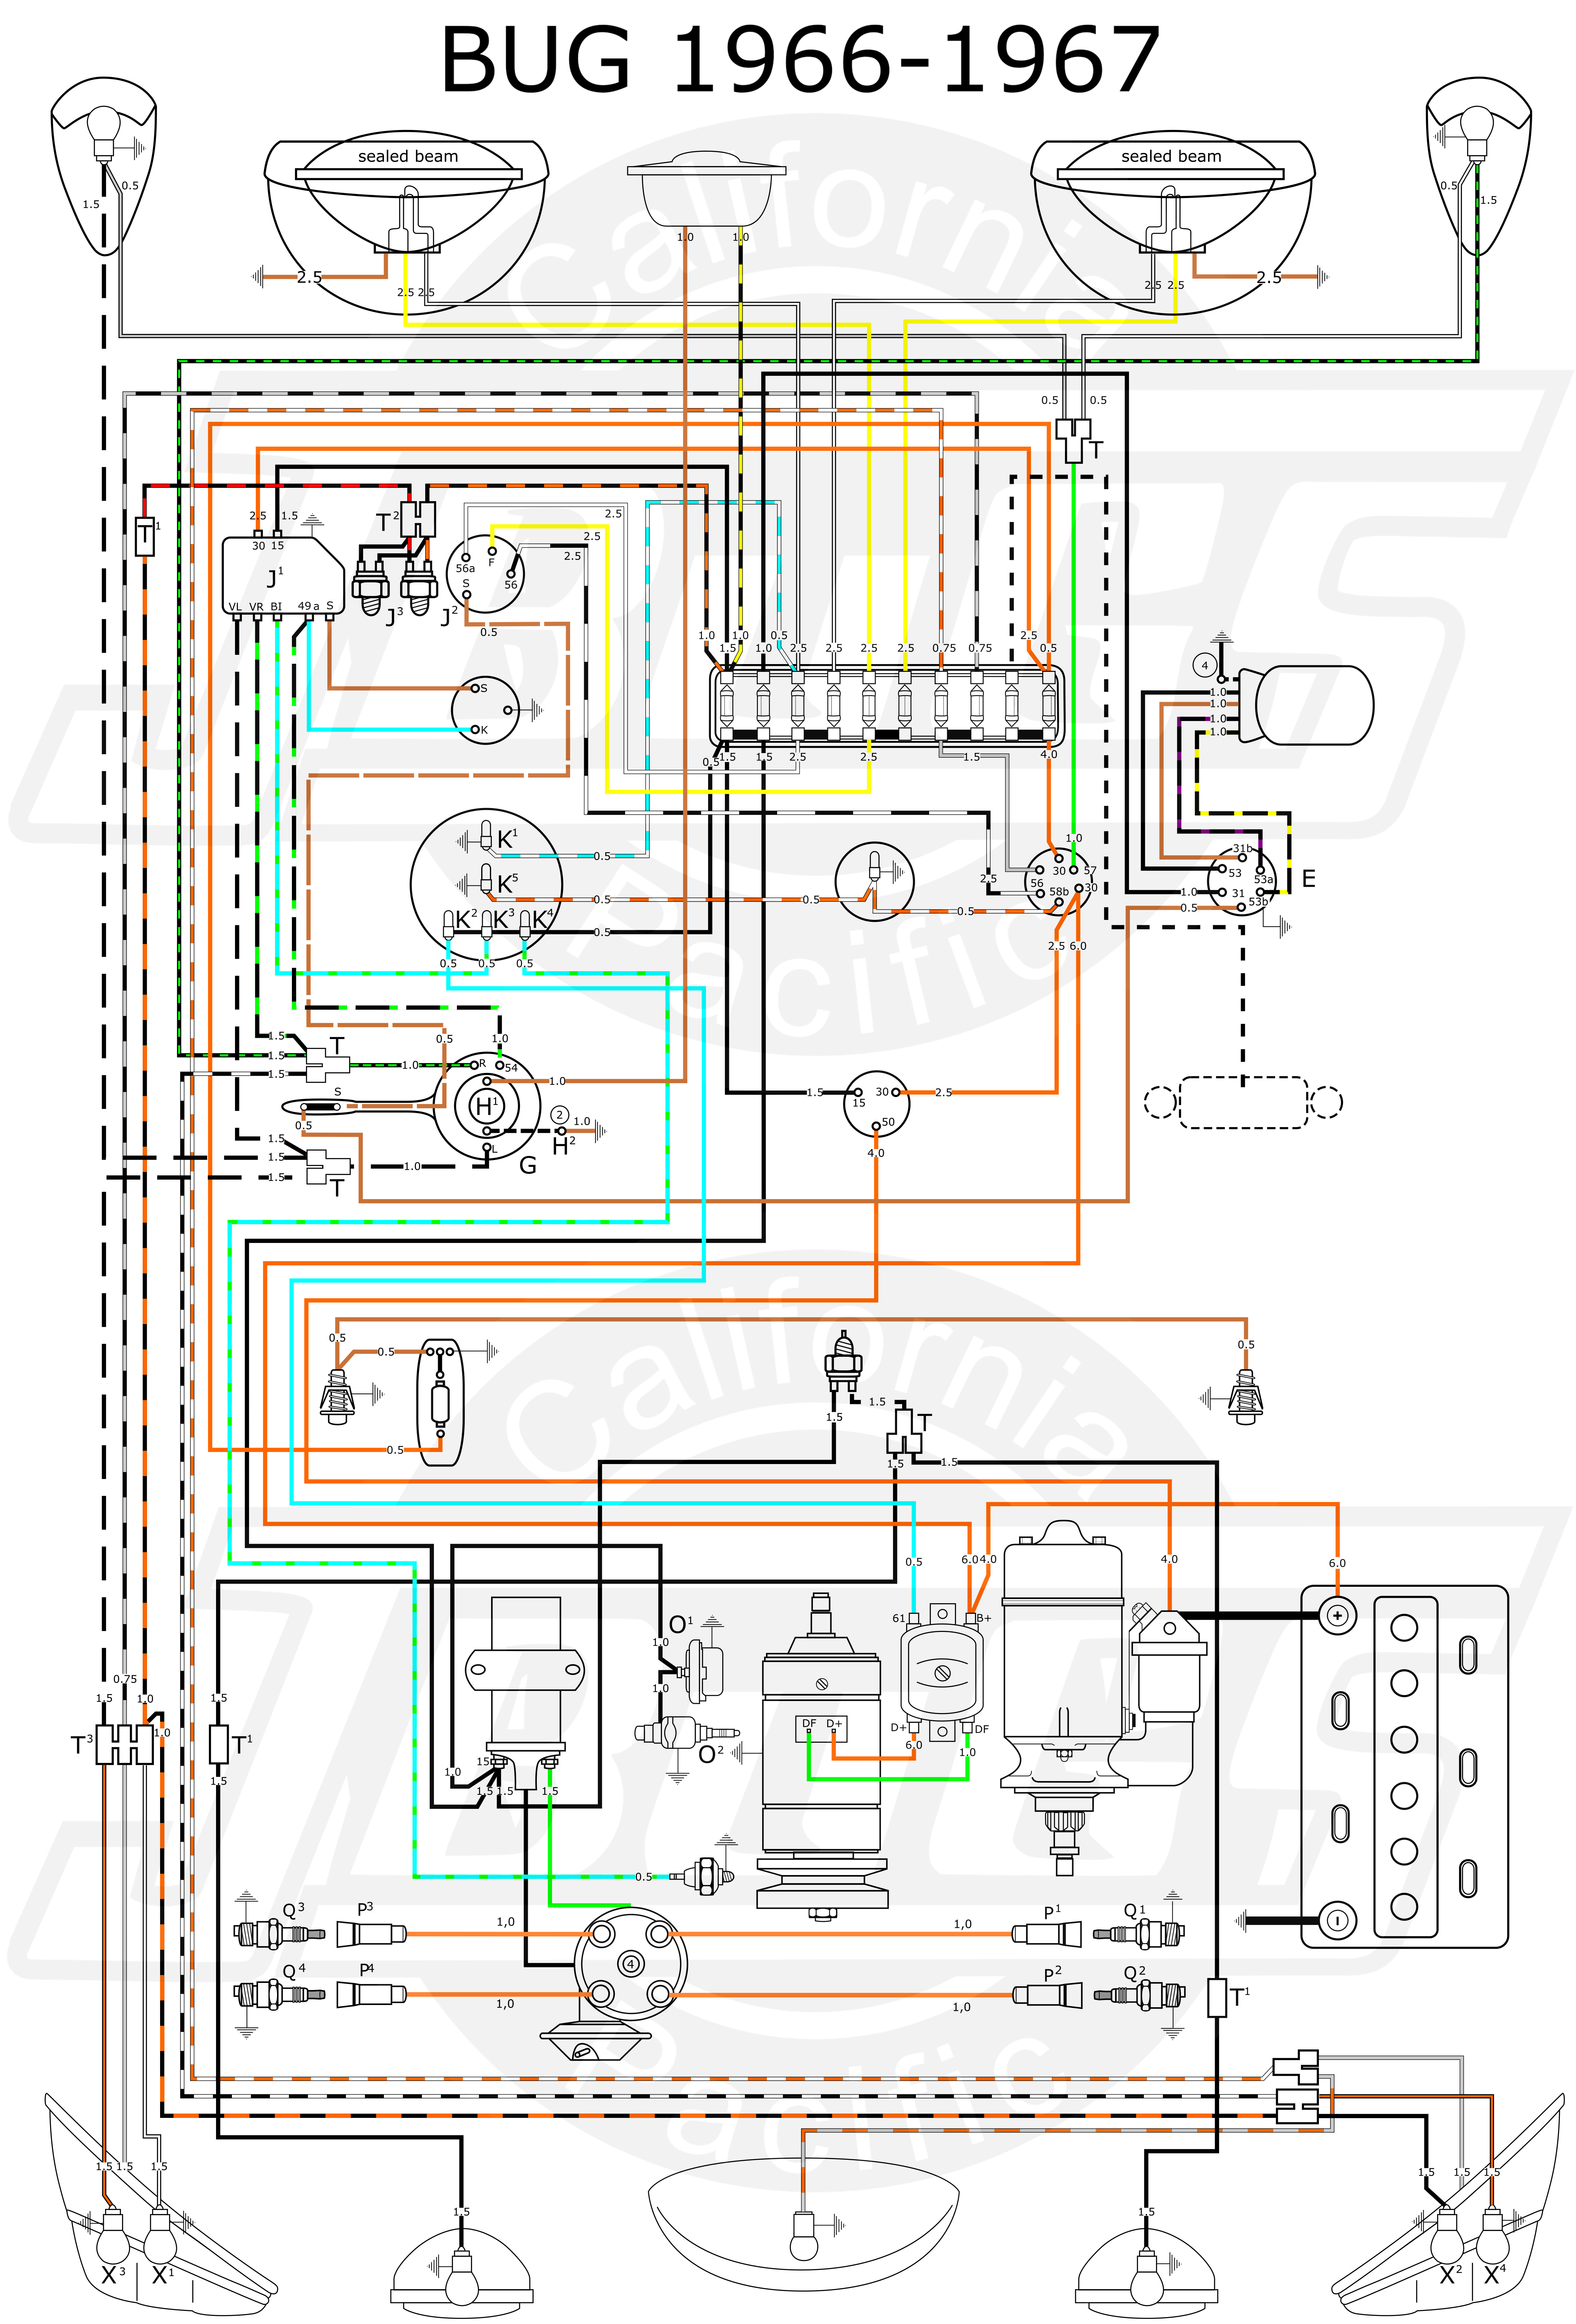 VW Bug 1966 67 Wiring Diagram 67 vw bus wiring harness 71 vw wiring harness \u2022 wiring diagrams Wiring Harness Diagram at honlapkeszites.co